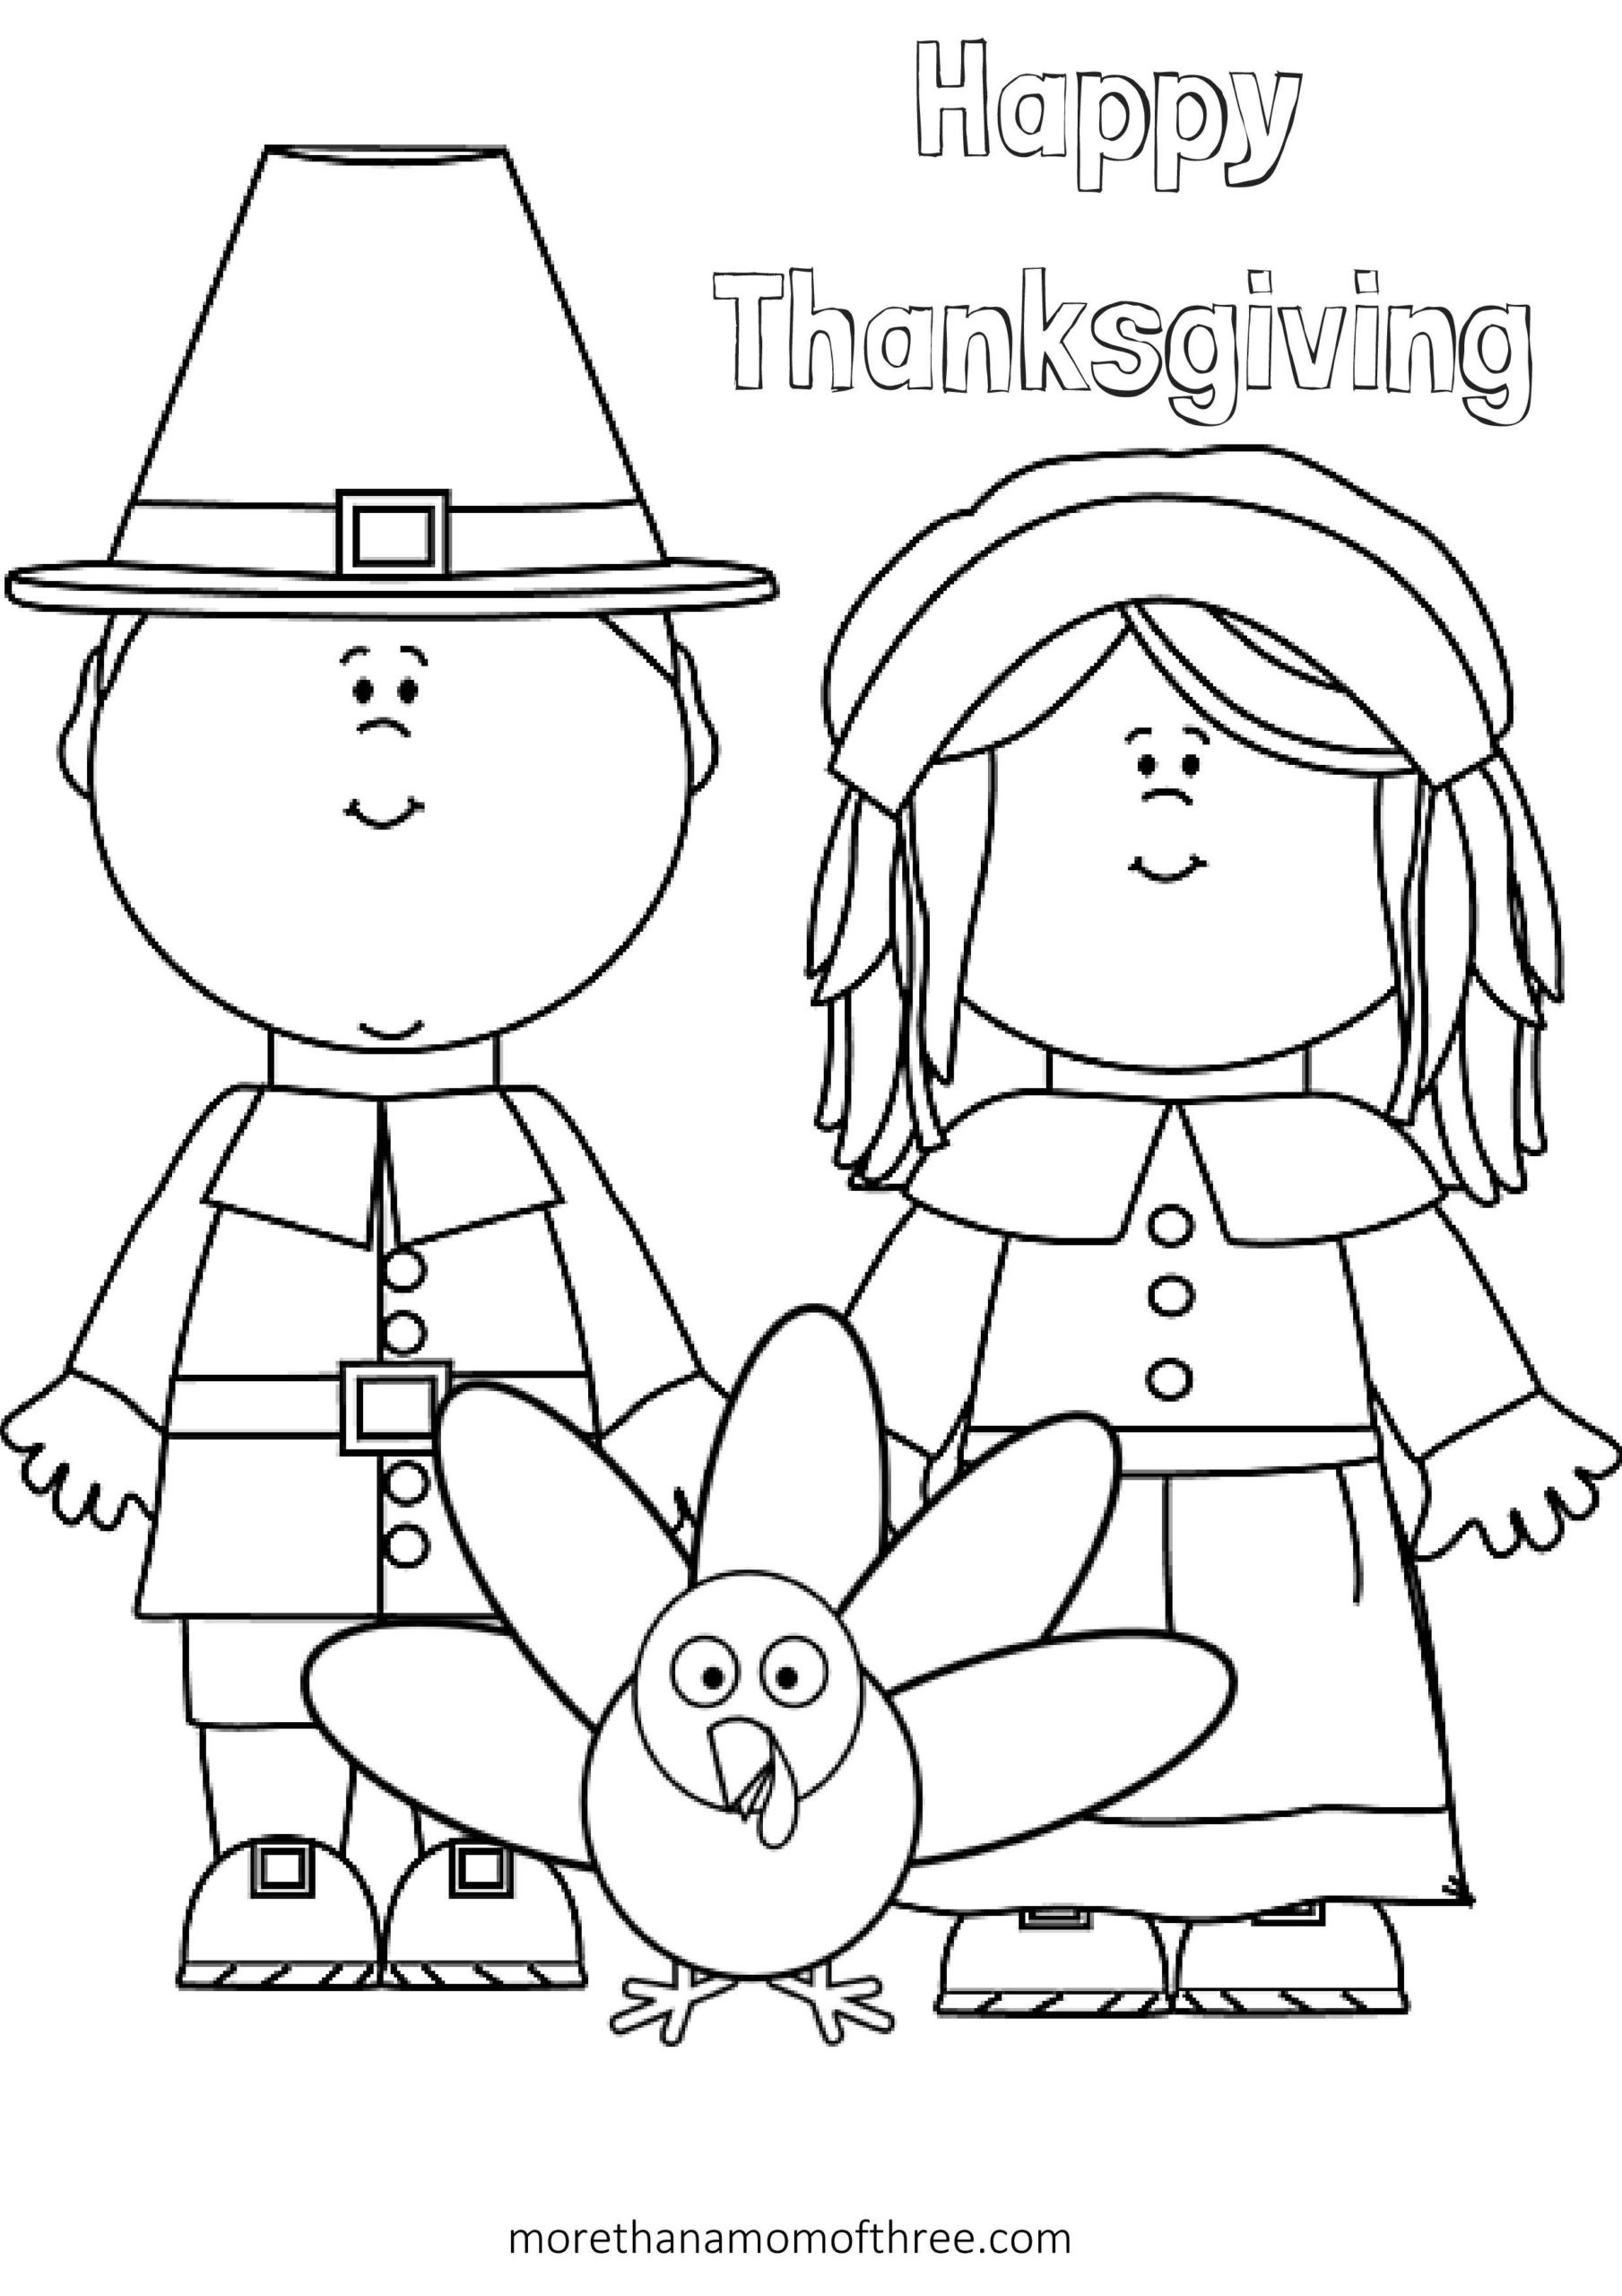 Thanksgiving Math Sheets Thanksgiving Worksheets for Preschoolers Worksheet Halloween